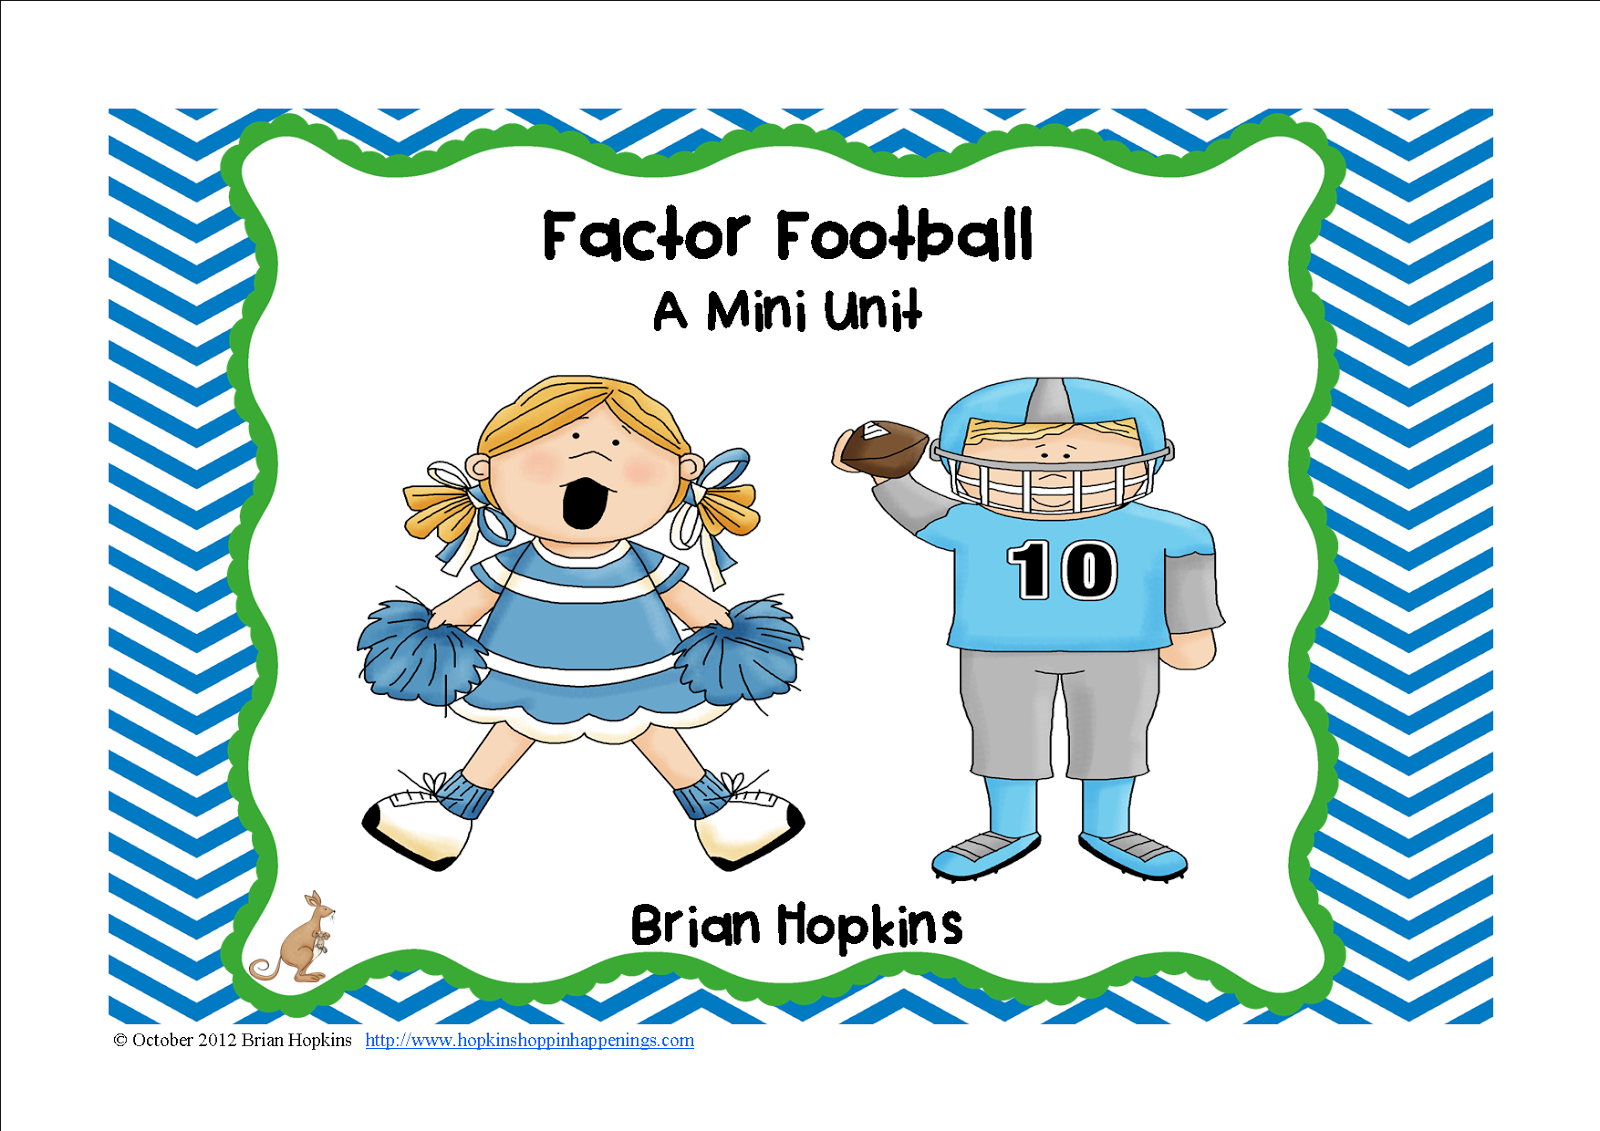 http://www.teacherspayteachers.com/Product/Factor-Football-361582